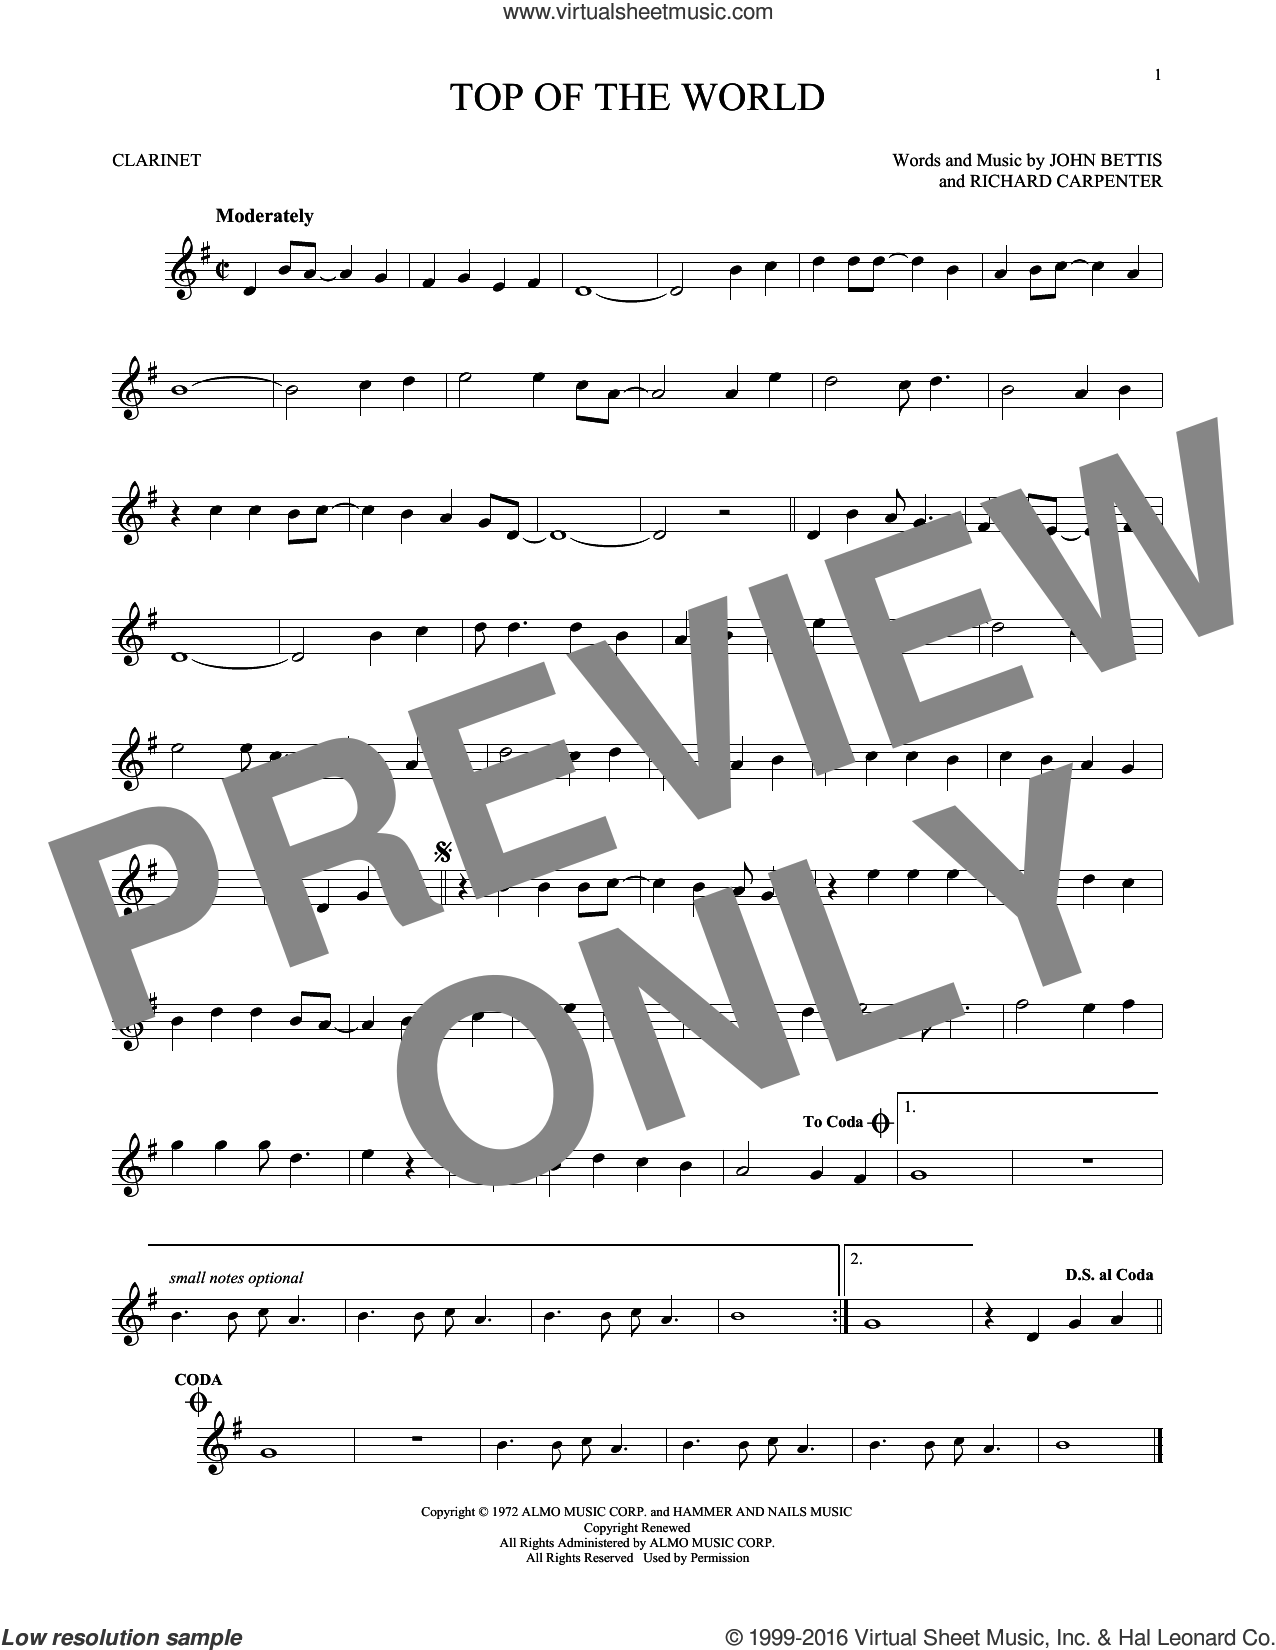 Top Of The World sheet music for clarinet solo by Richard Carpenter, Carpenters and John Bettis. Score Image Preview.